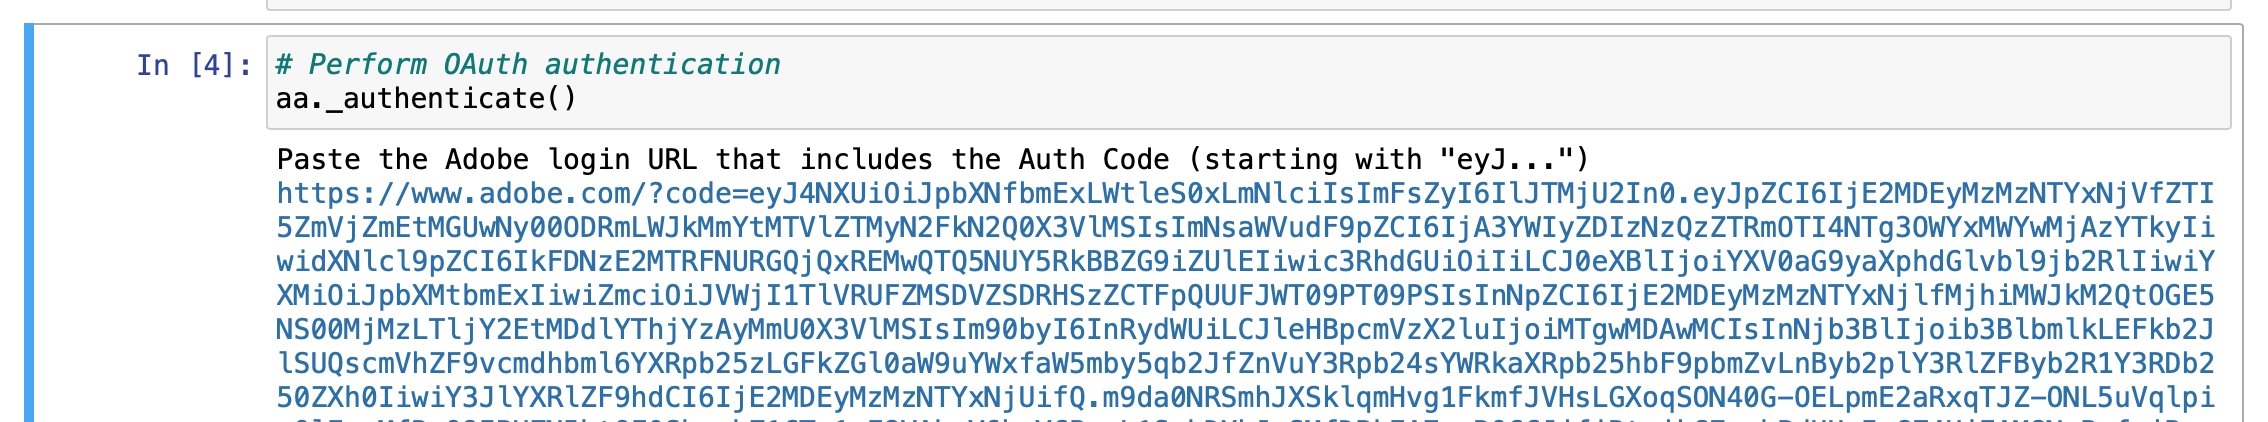 completing oauth authentication